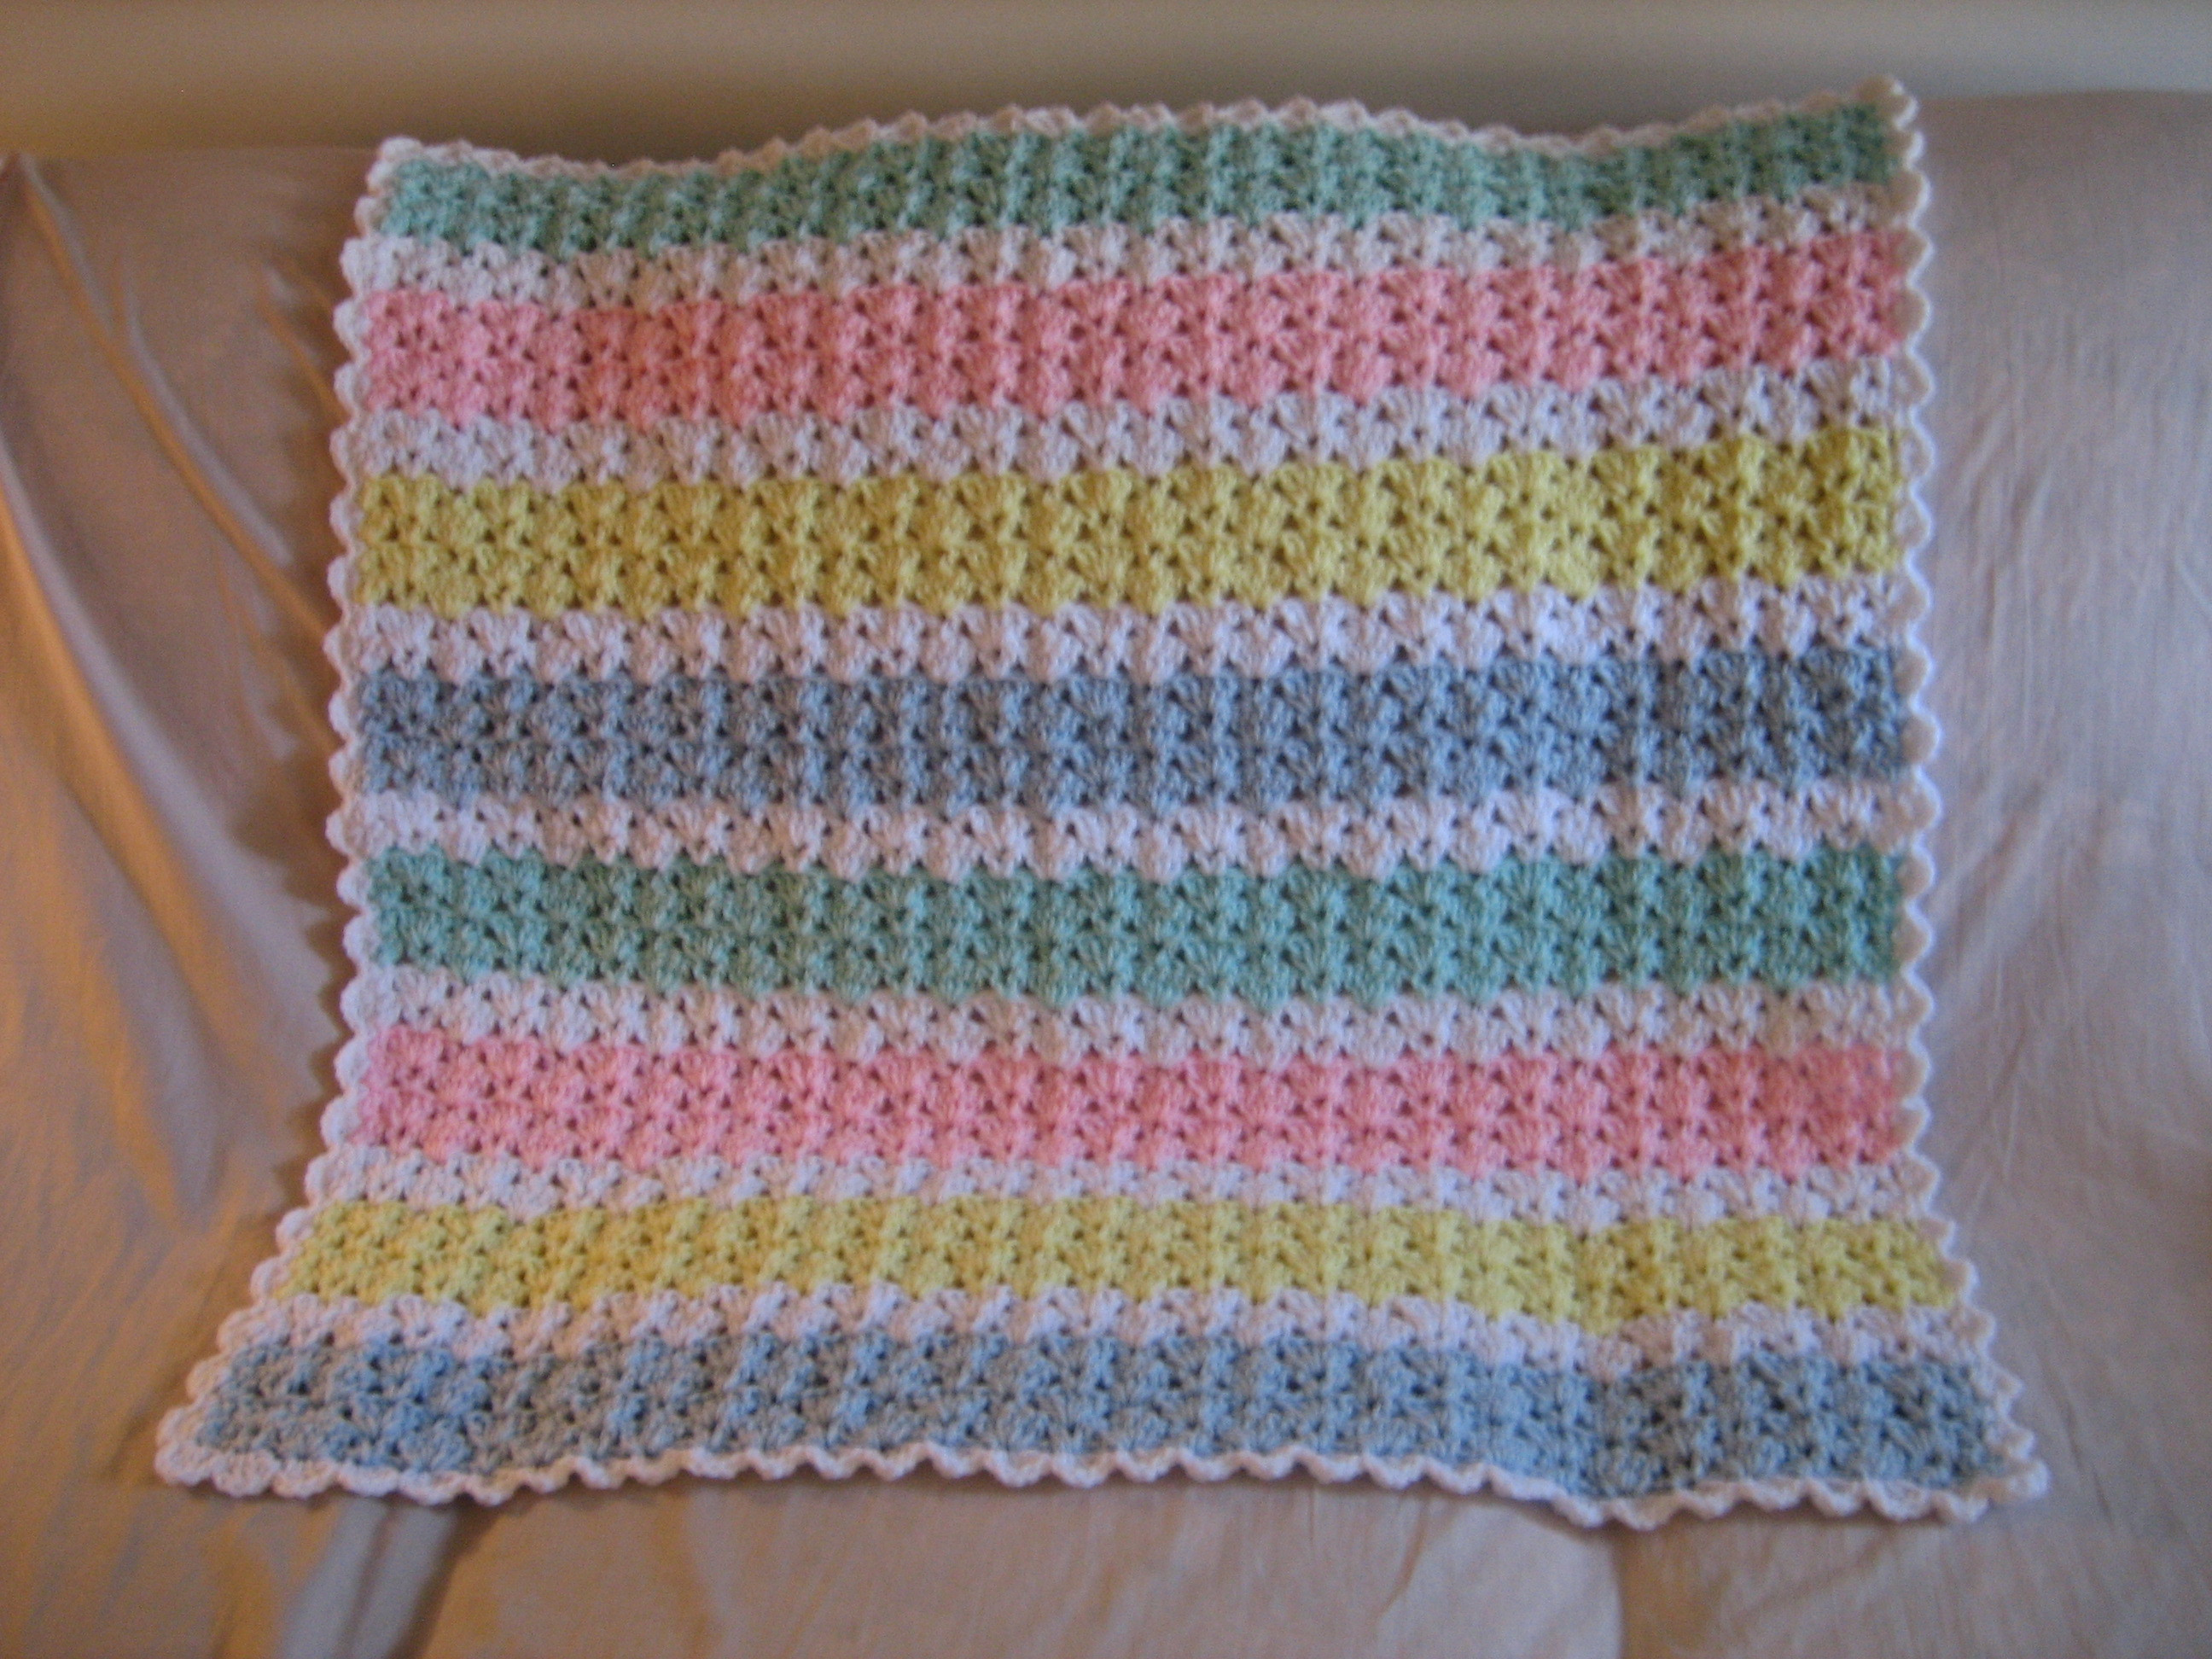 Crochet Patterns for Beginners Awesome Baby Blanket Crochet Patterns for Beginners Of New 49 Models Crochet Patterns for Beginners